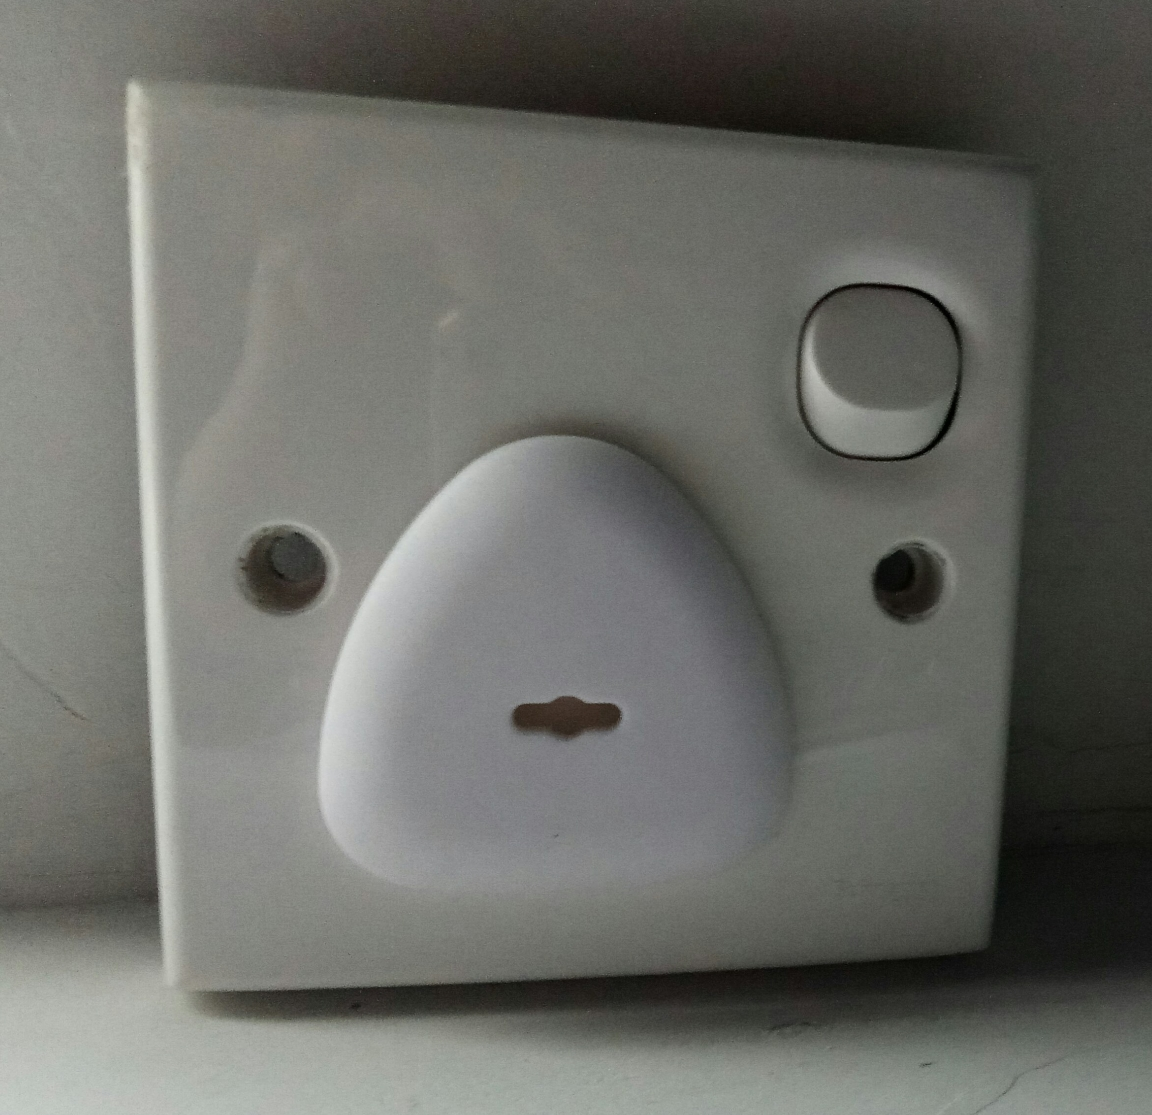 Outlet protector for kids safety